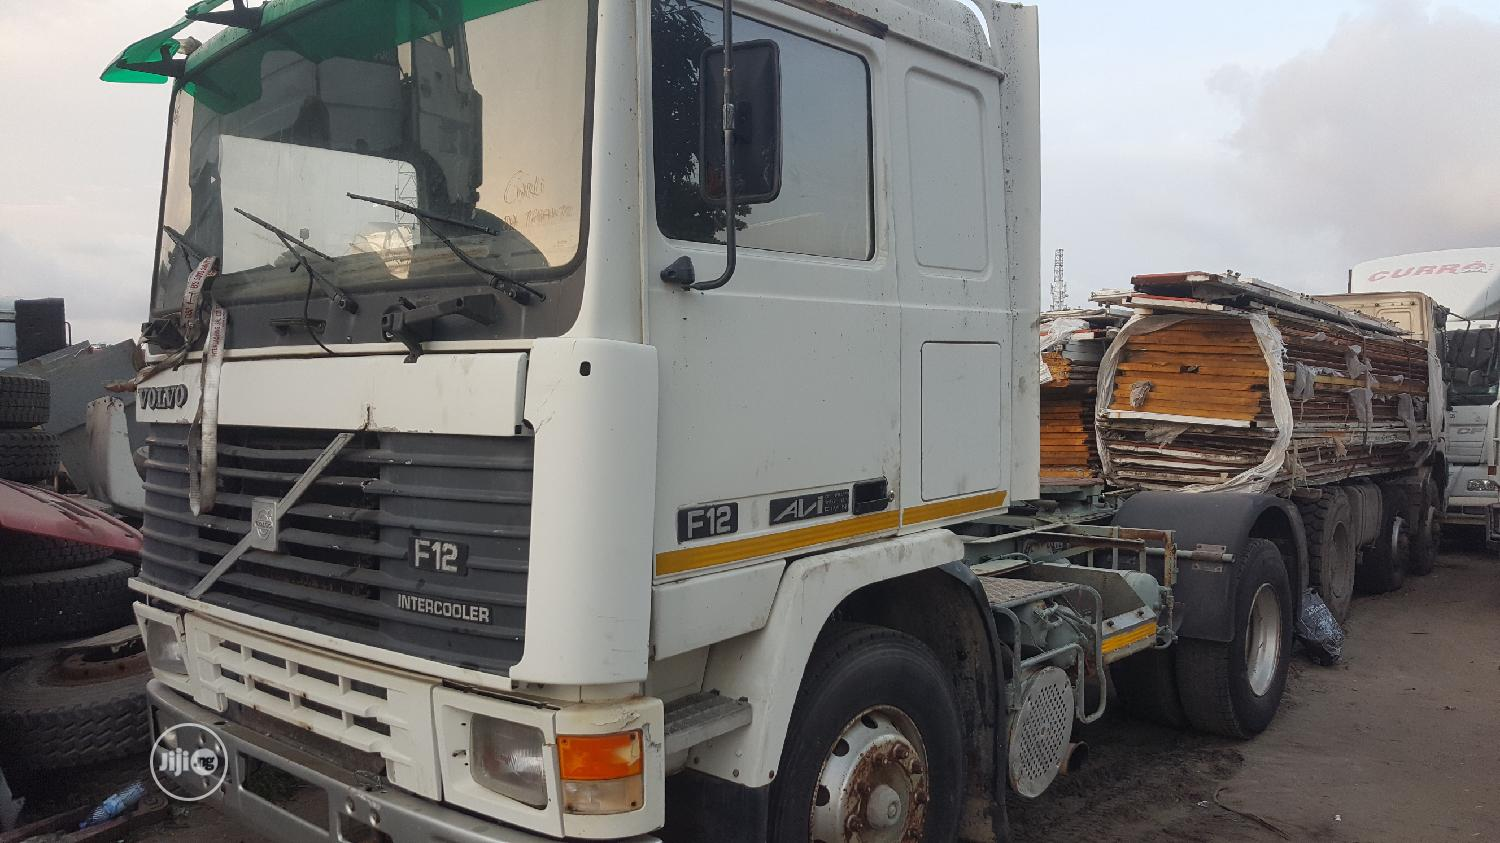 New Arrival F12 Volvo Six Tyres Head Truck Spring Suspension | Trucks & Trailers for sale in Apapa, Lagos State, Nigeria